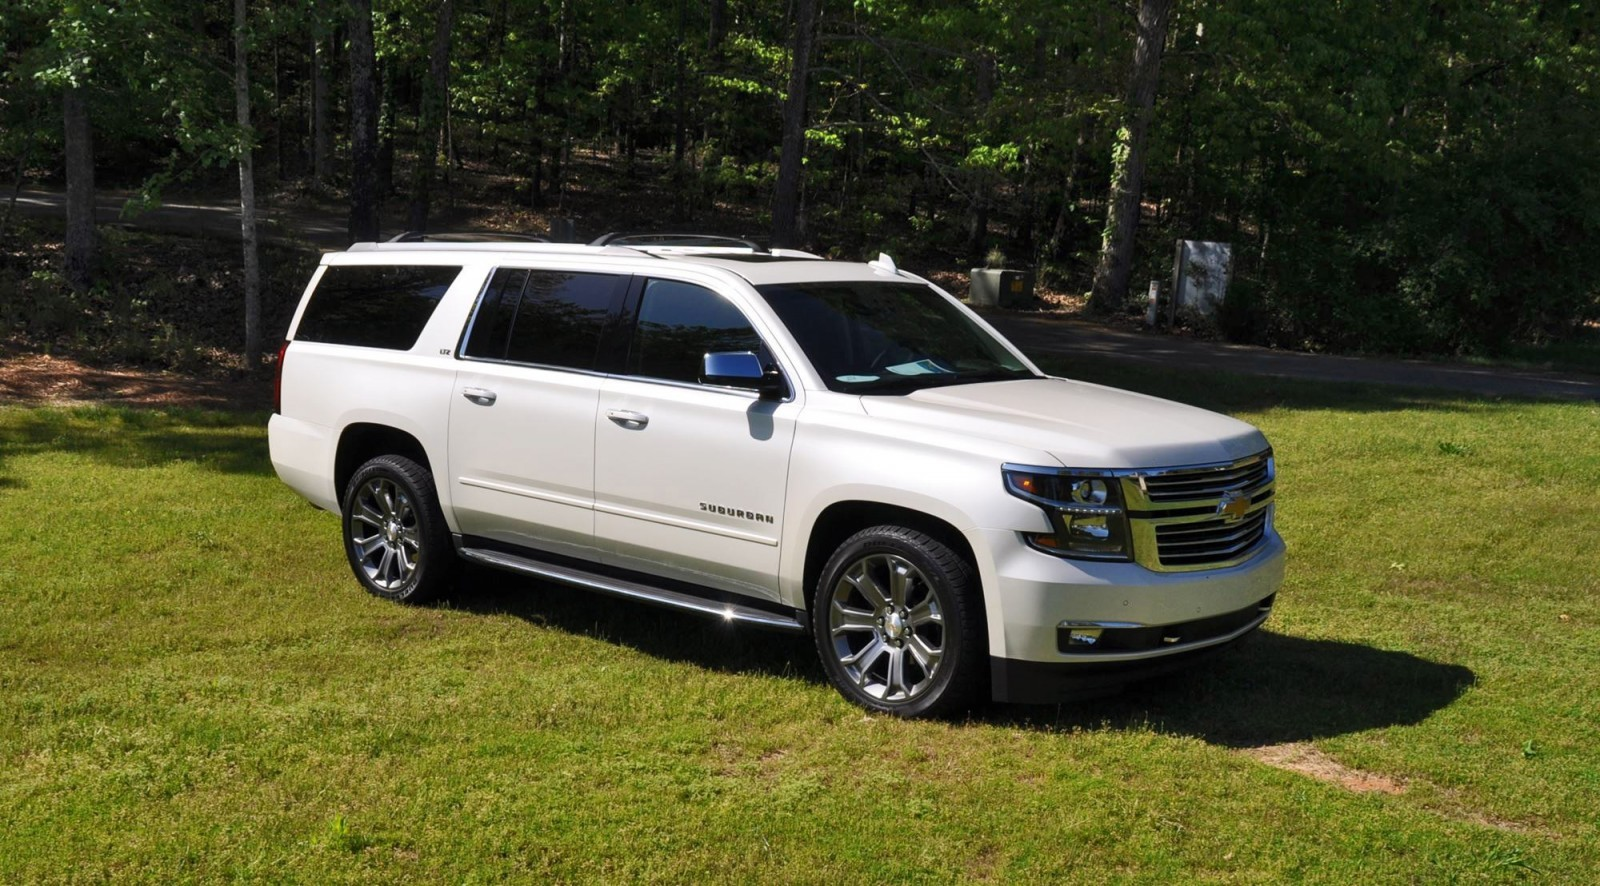 2015 chevrolet suburban ltz 1 2 ton 4wd review. Black Bedroom Furniture Sets. Home Design Ideas